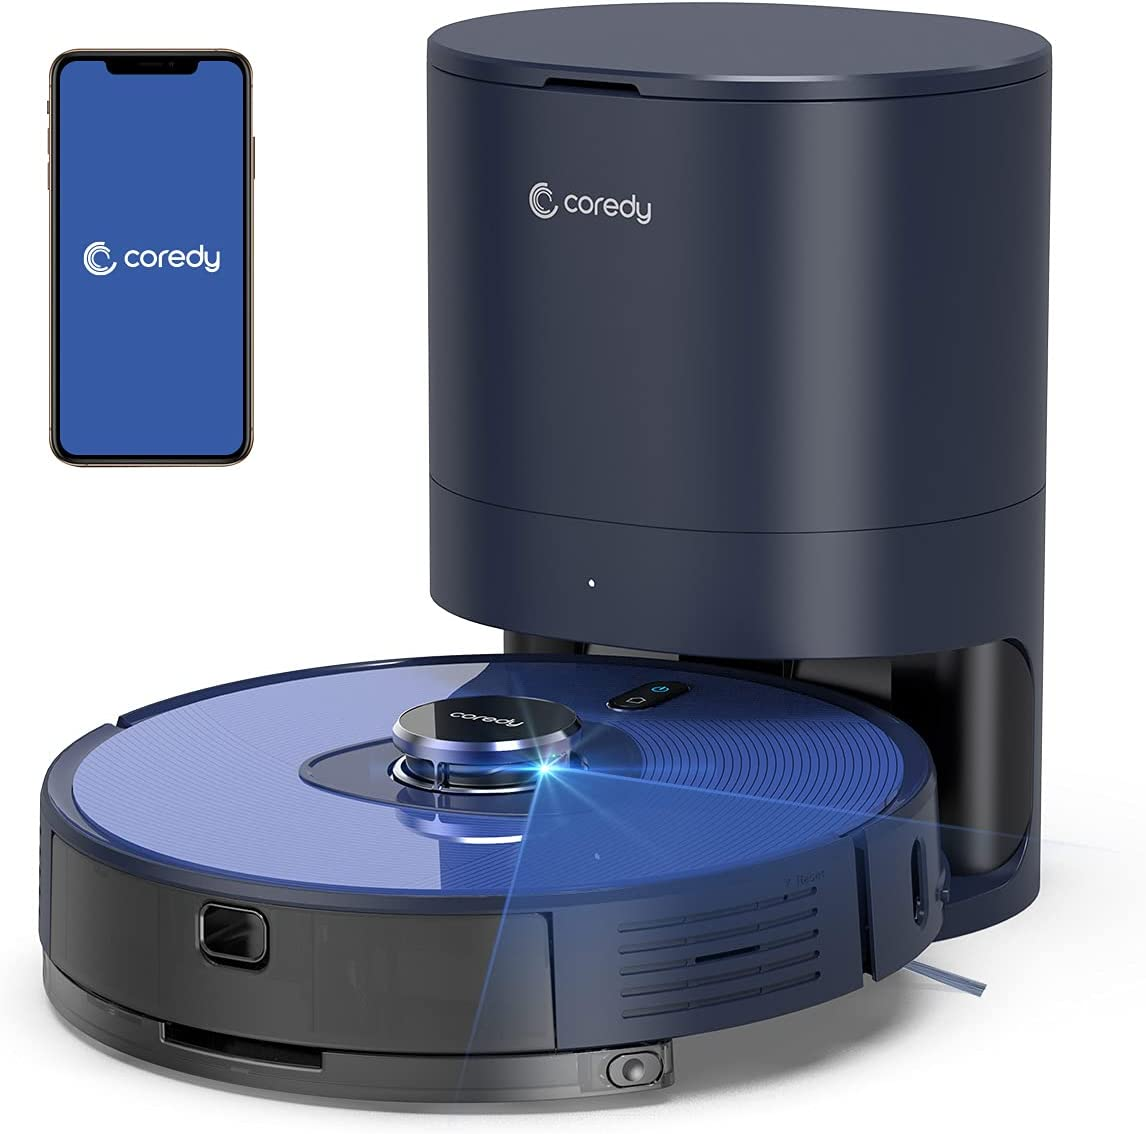 Coredy Low price L900X Robot Vacuum Cleaner Rapid rise Self Li with Station Emptying